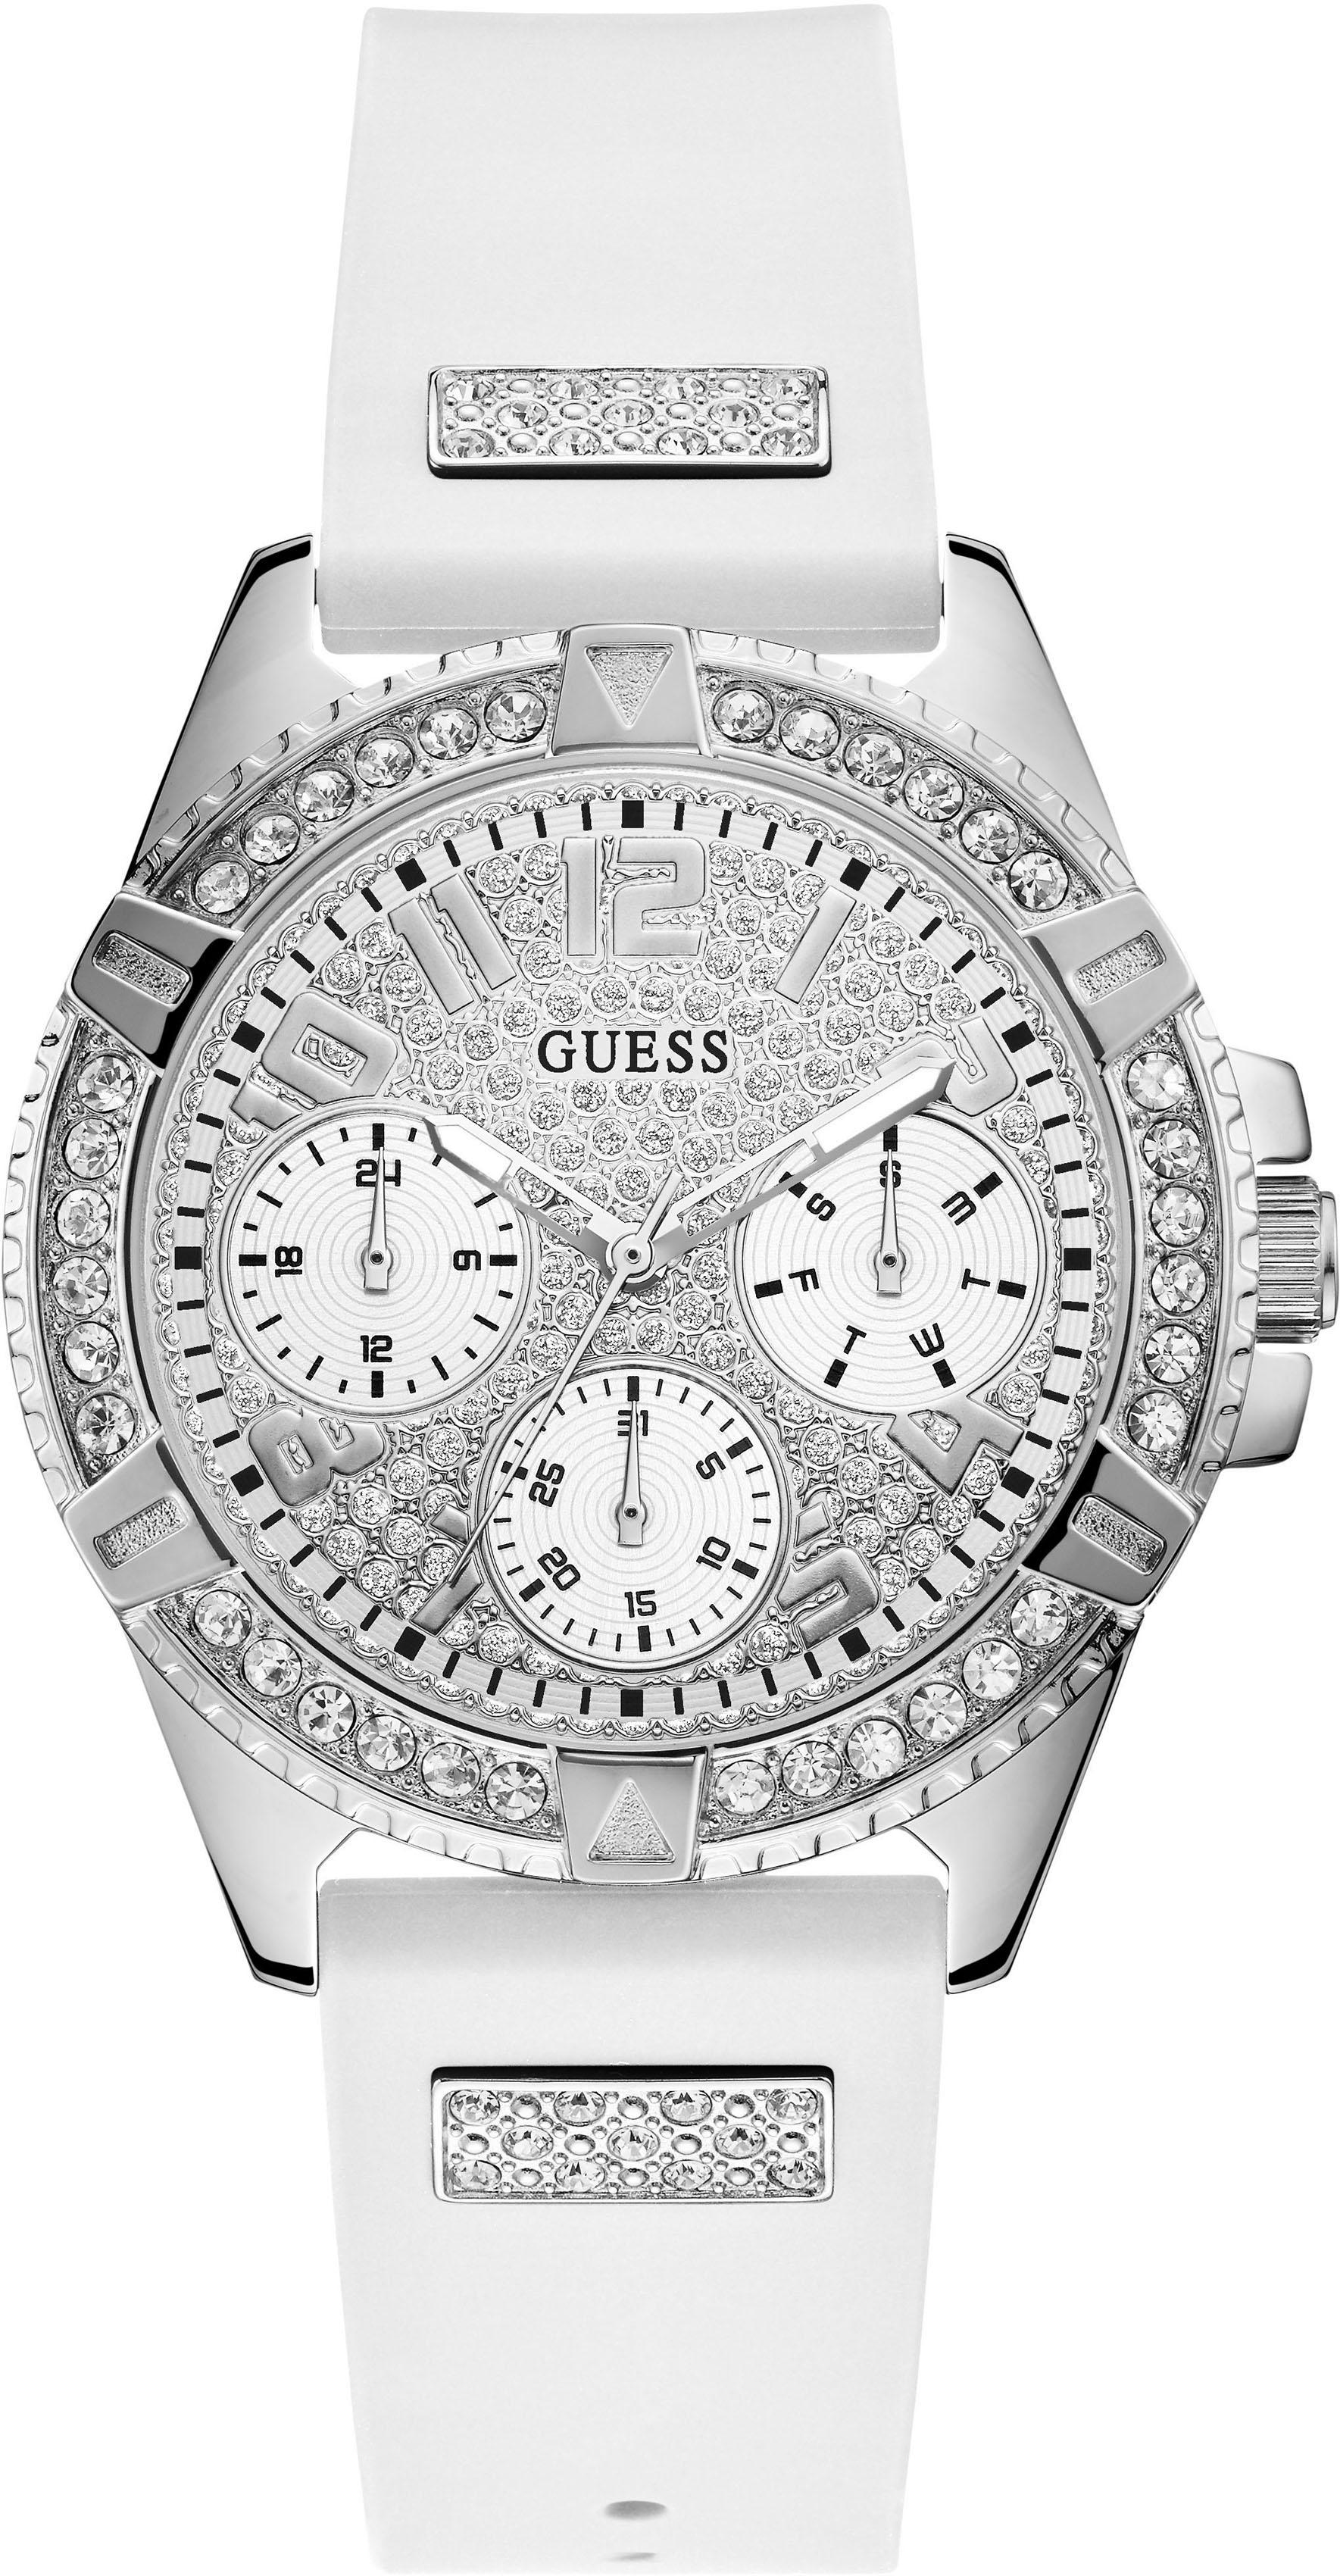 Guess Multifunktionsuhr LADY FRONTIER, W1160L4 | Uhren > Multifunktionsuhren | Guess